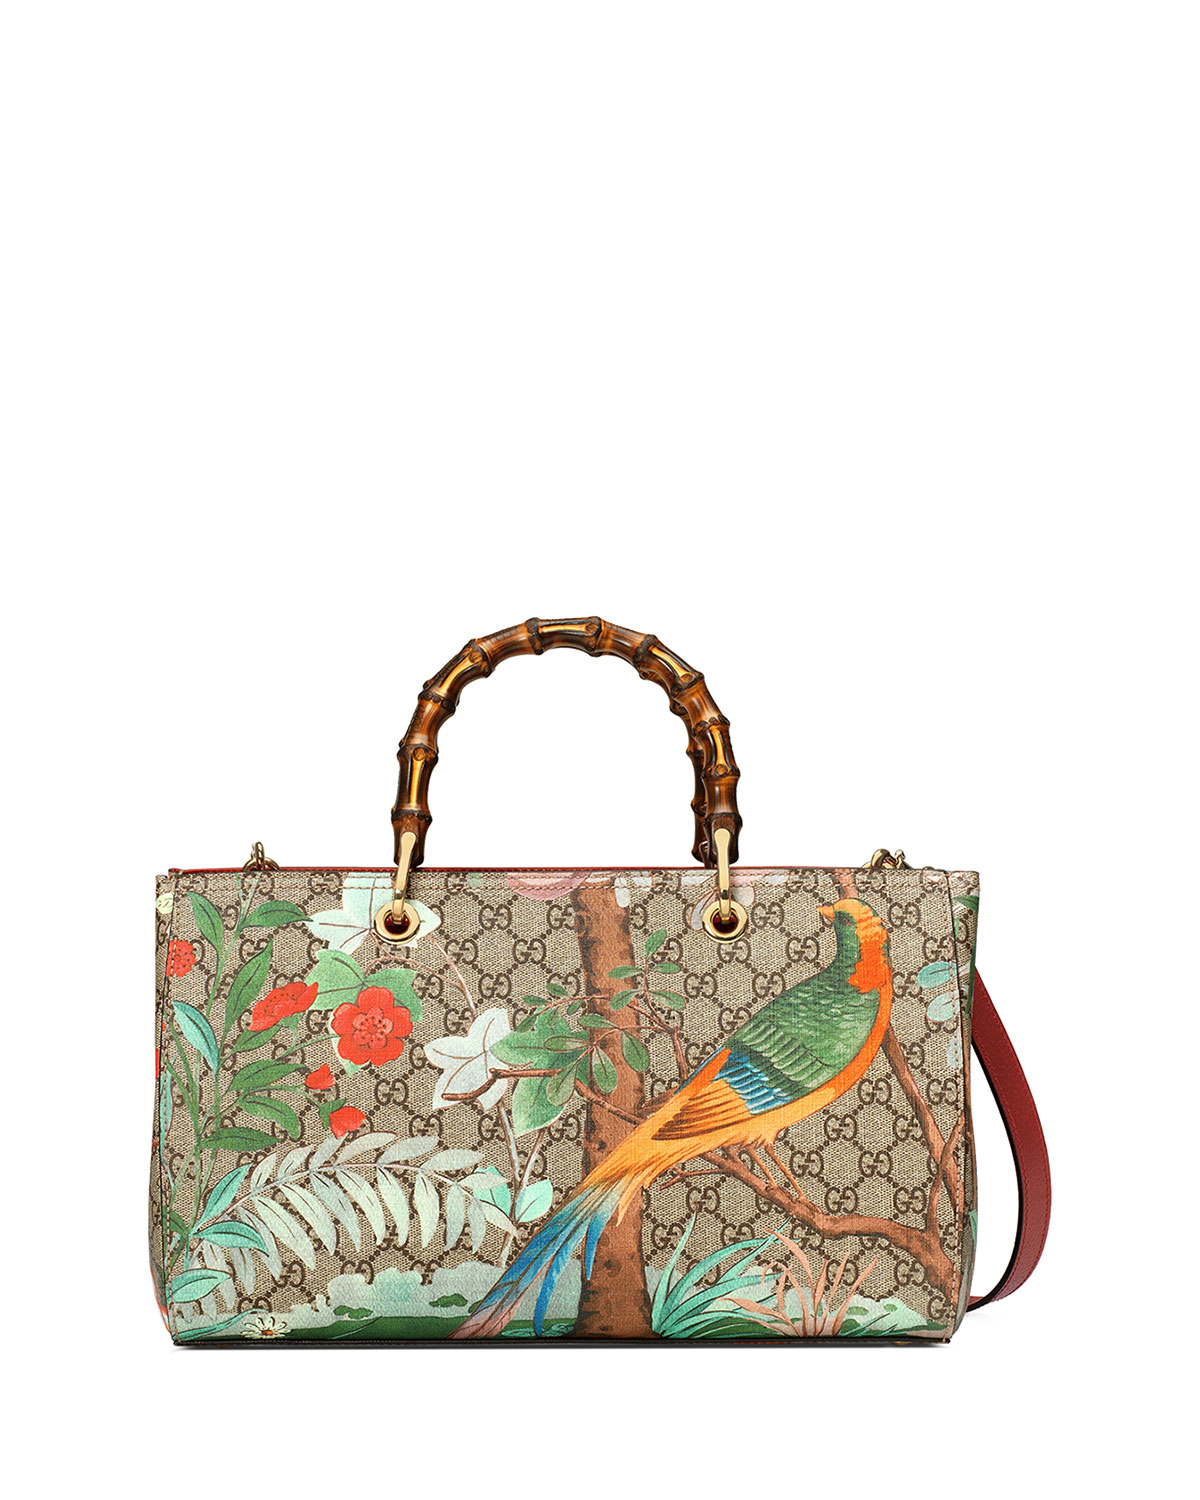 975032be319785 Gucci Tian Floral GG-Supreme Shopper Tote Bag, Multicolor | Neiman ...